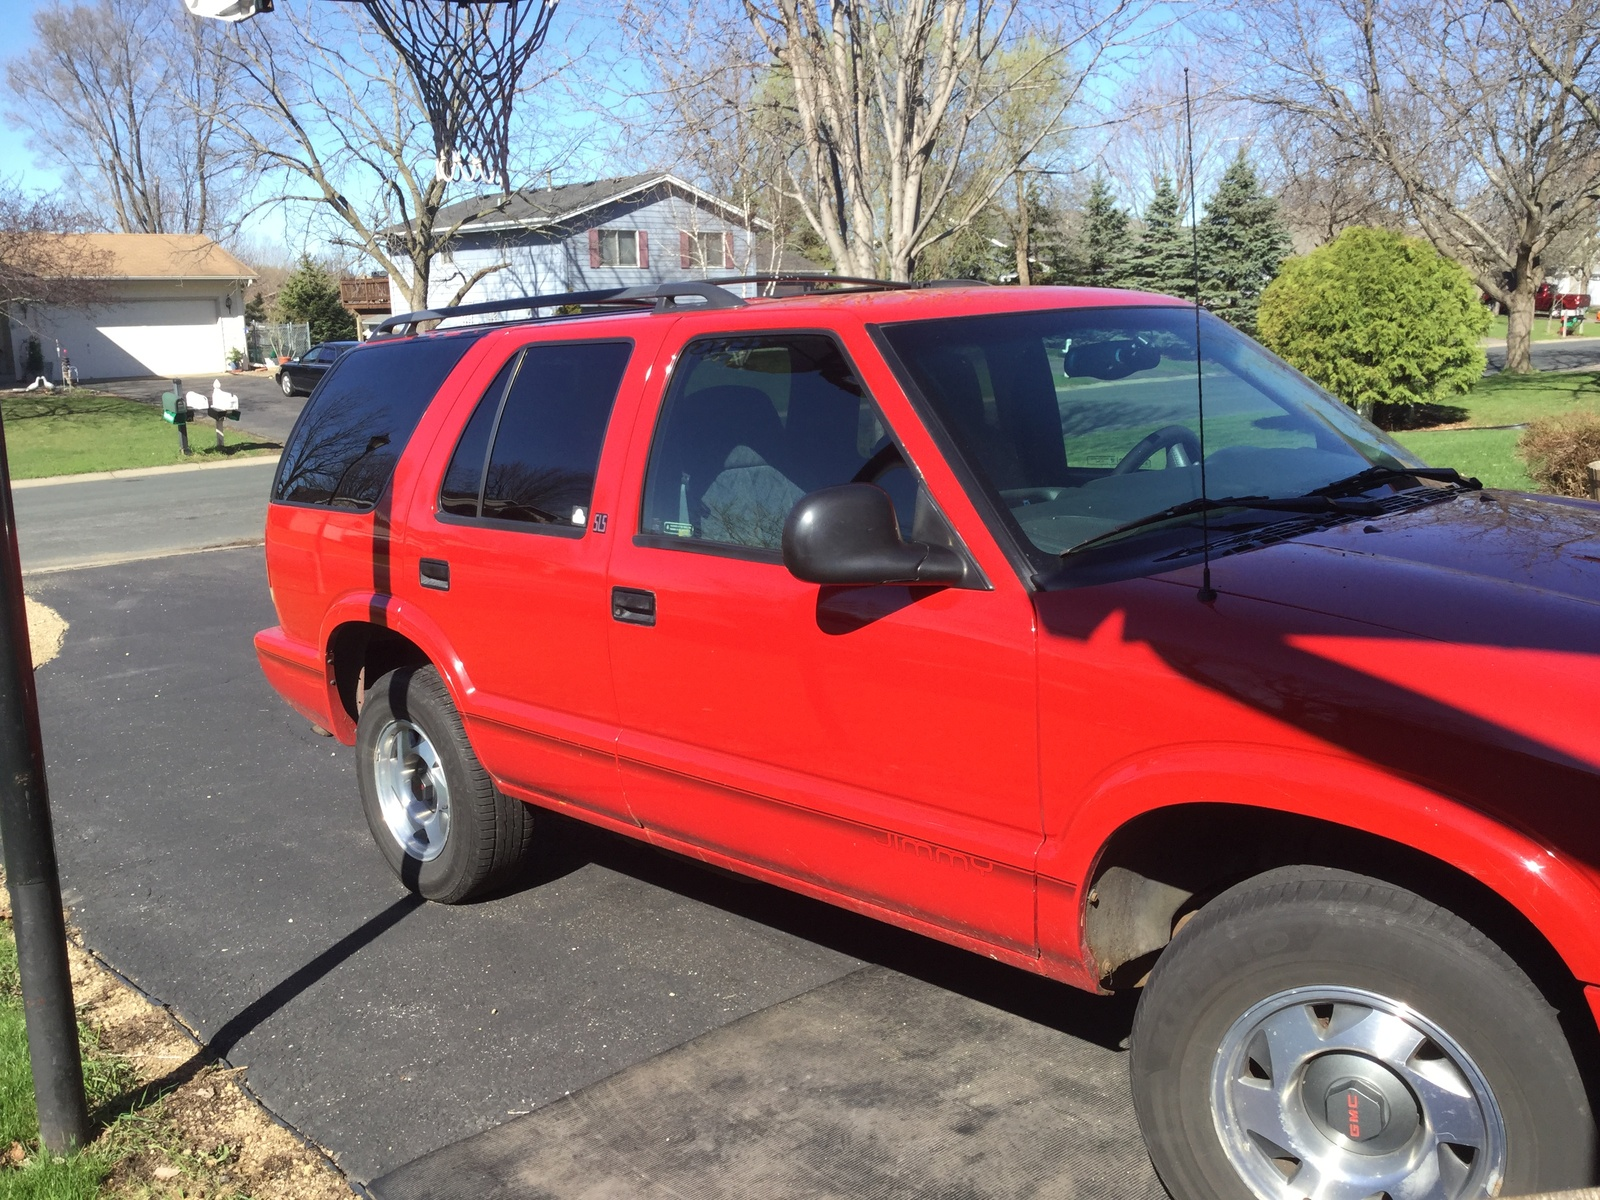 gmc jimmy questions what are the biggest tires i could put on my 1998 gmc jimmy sls cargurus put on my 1998 gmc jimmy sls